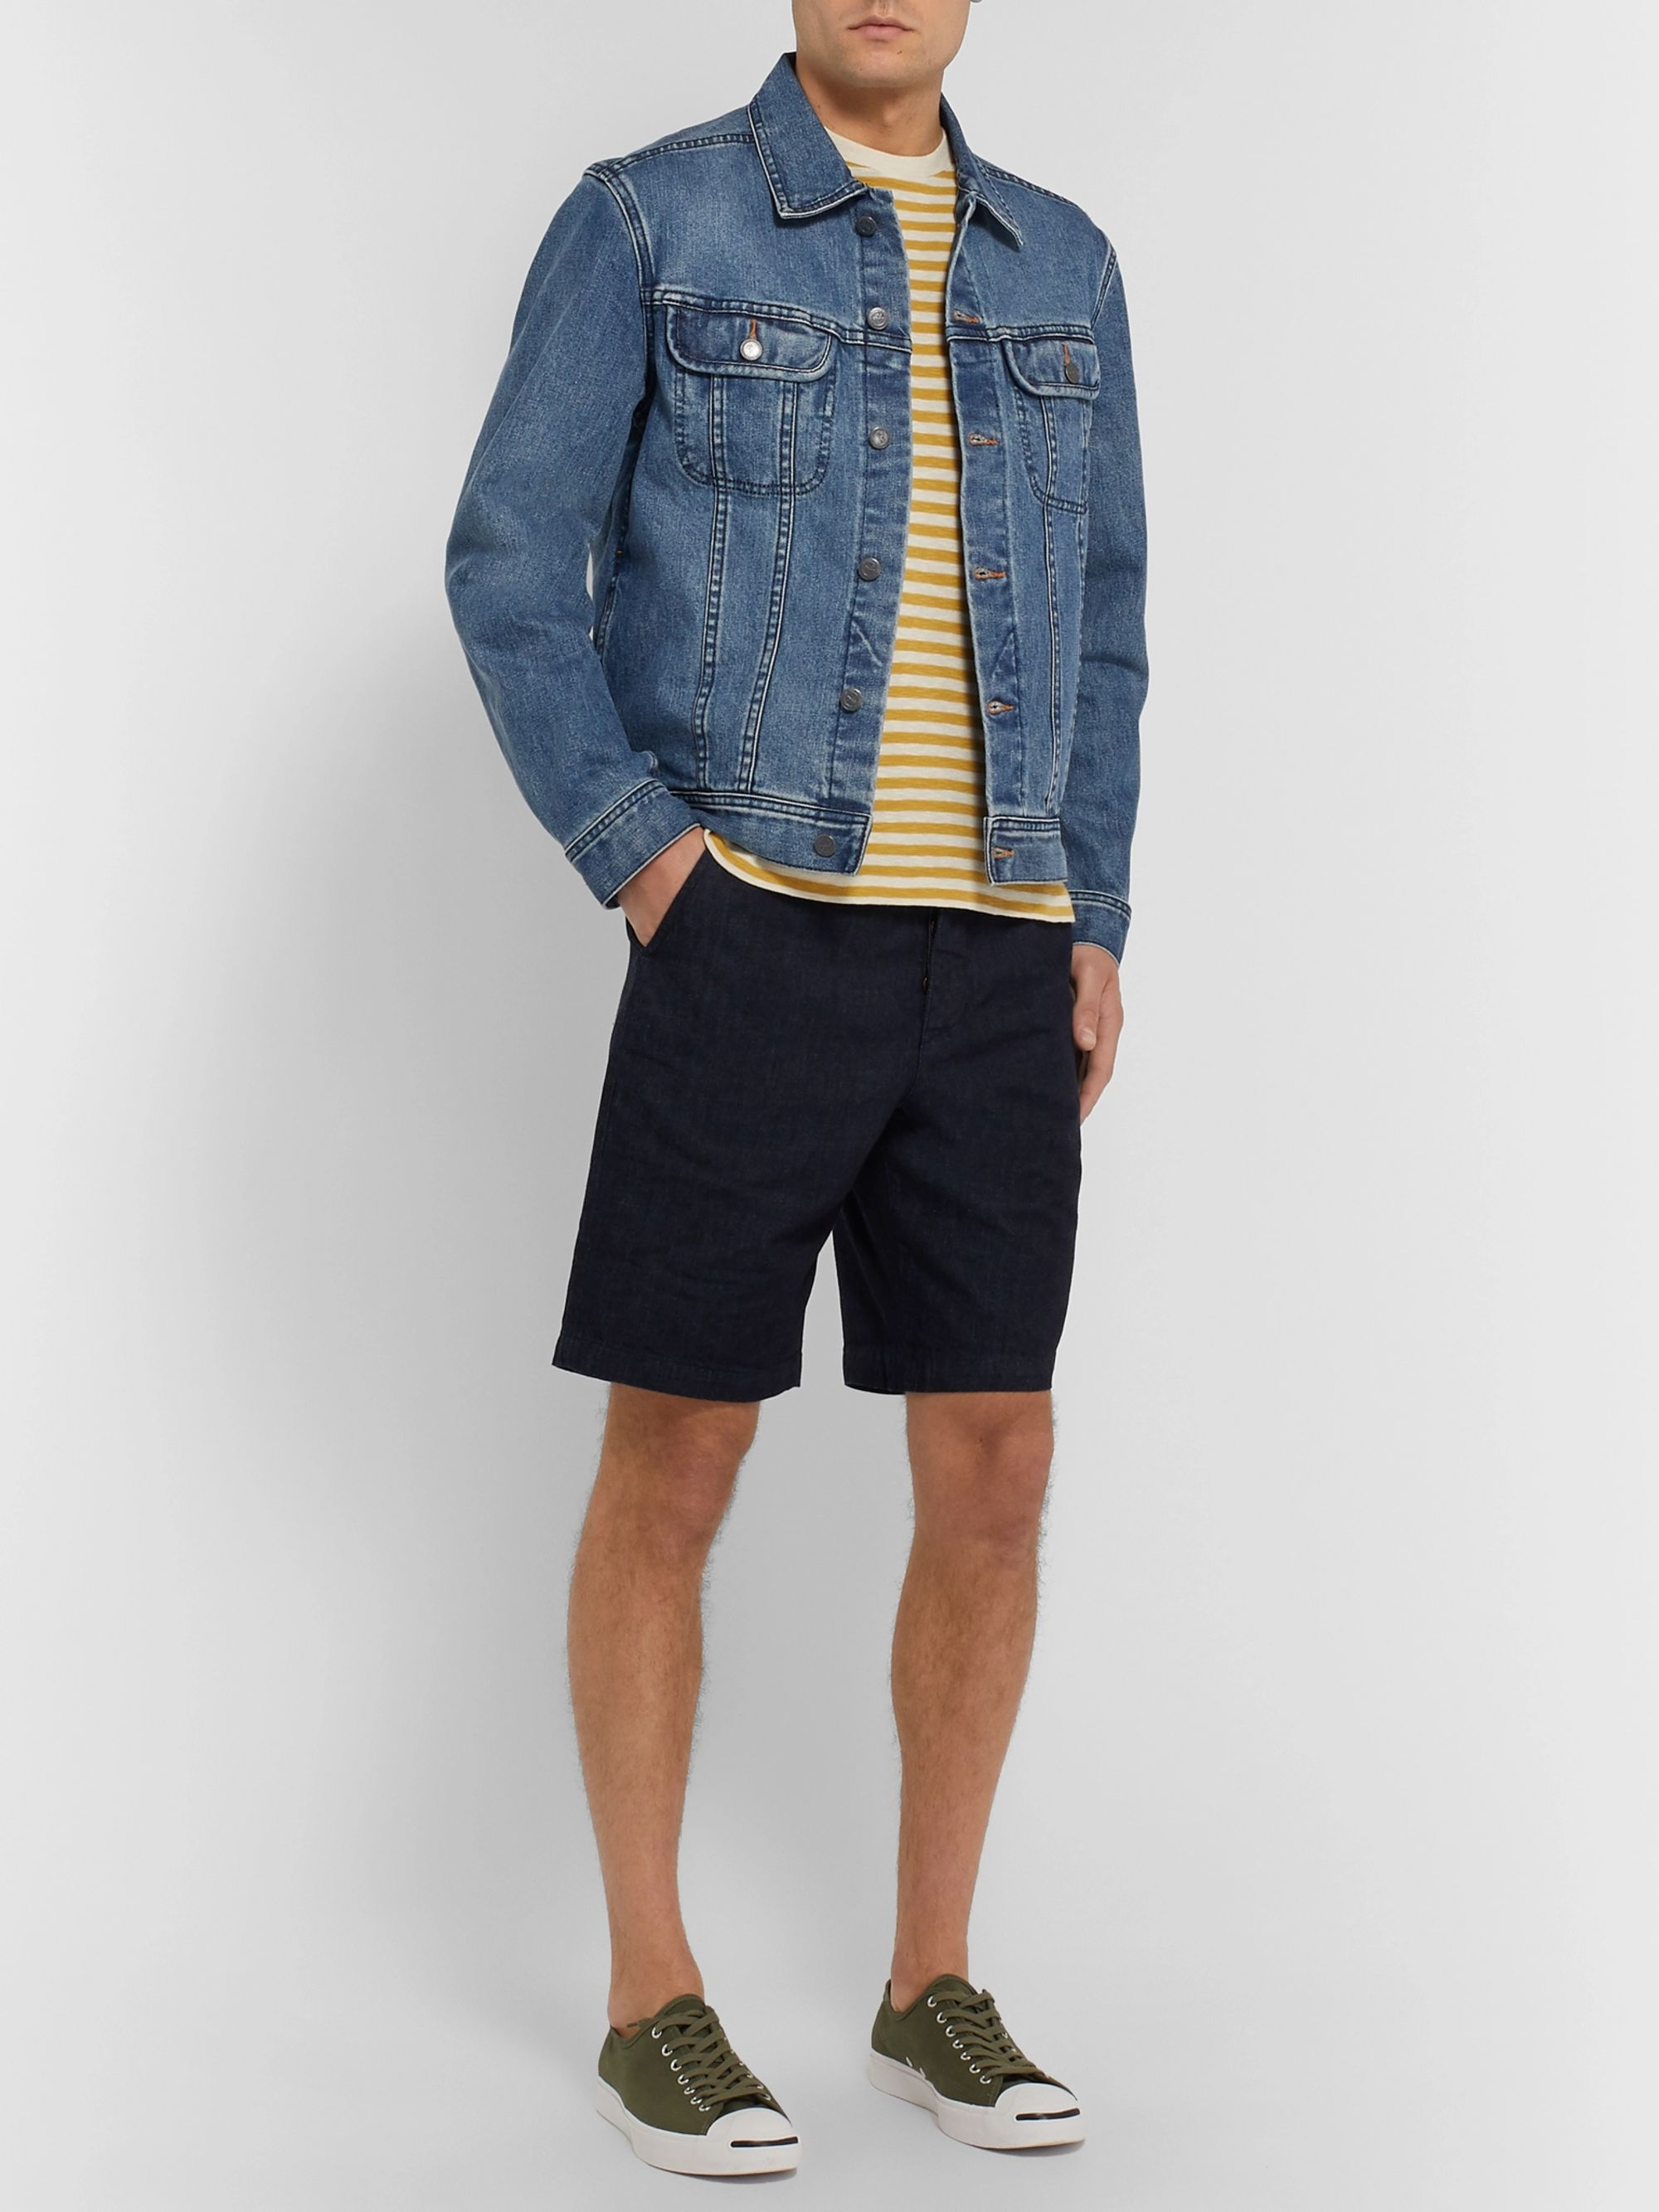 Oliver Spencer Organic Drawstring Shorts